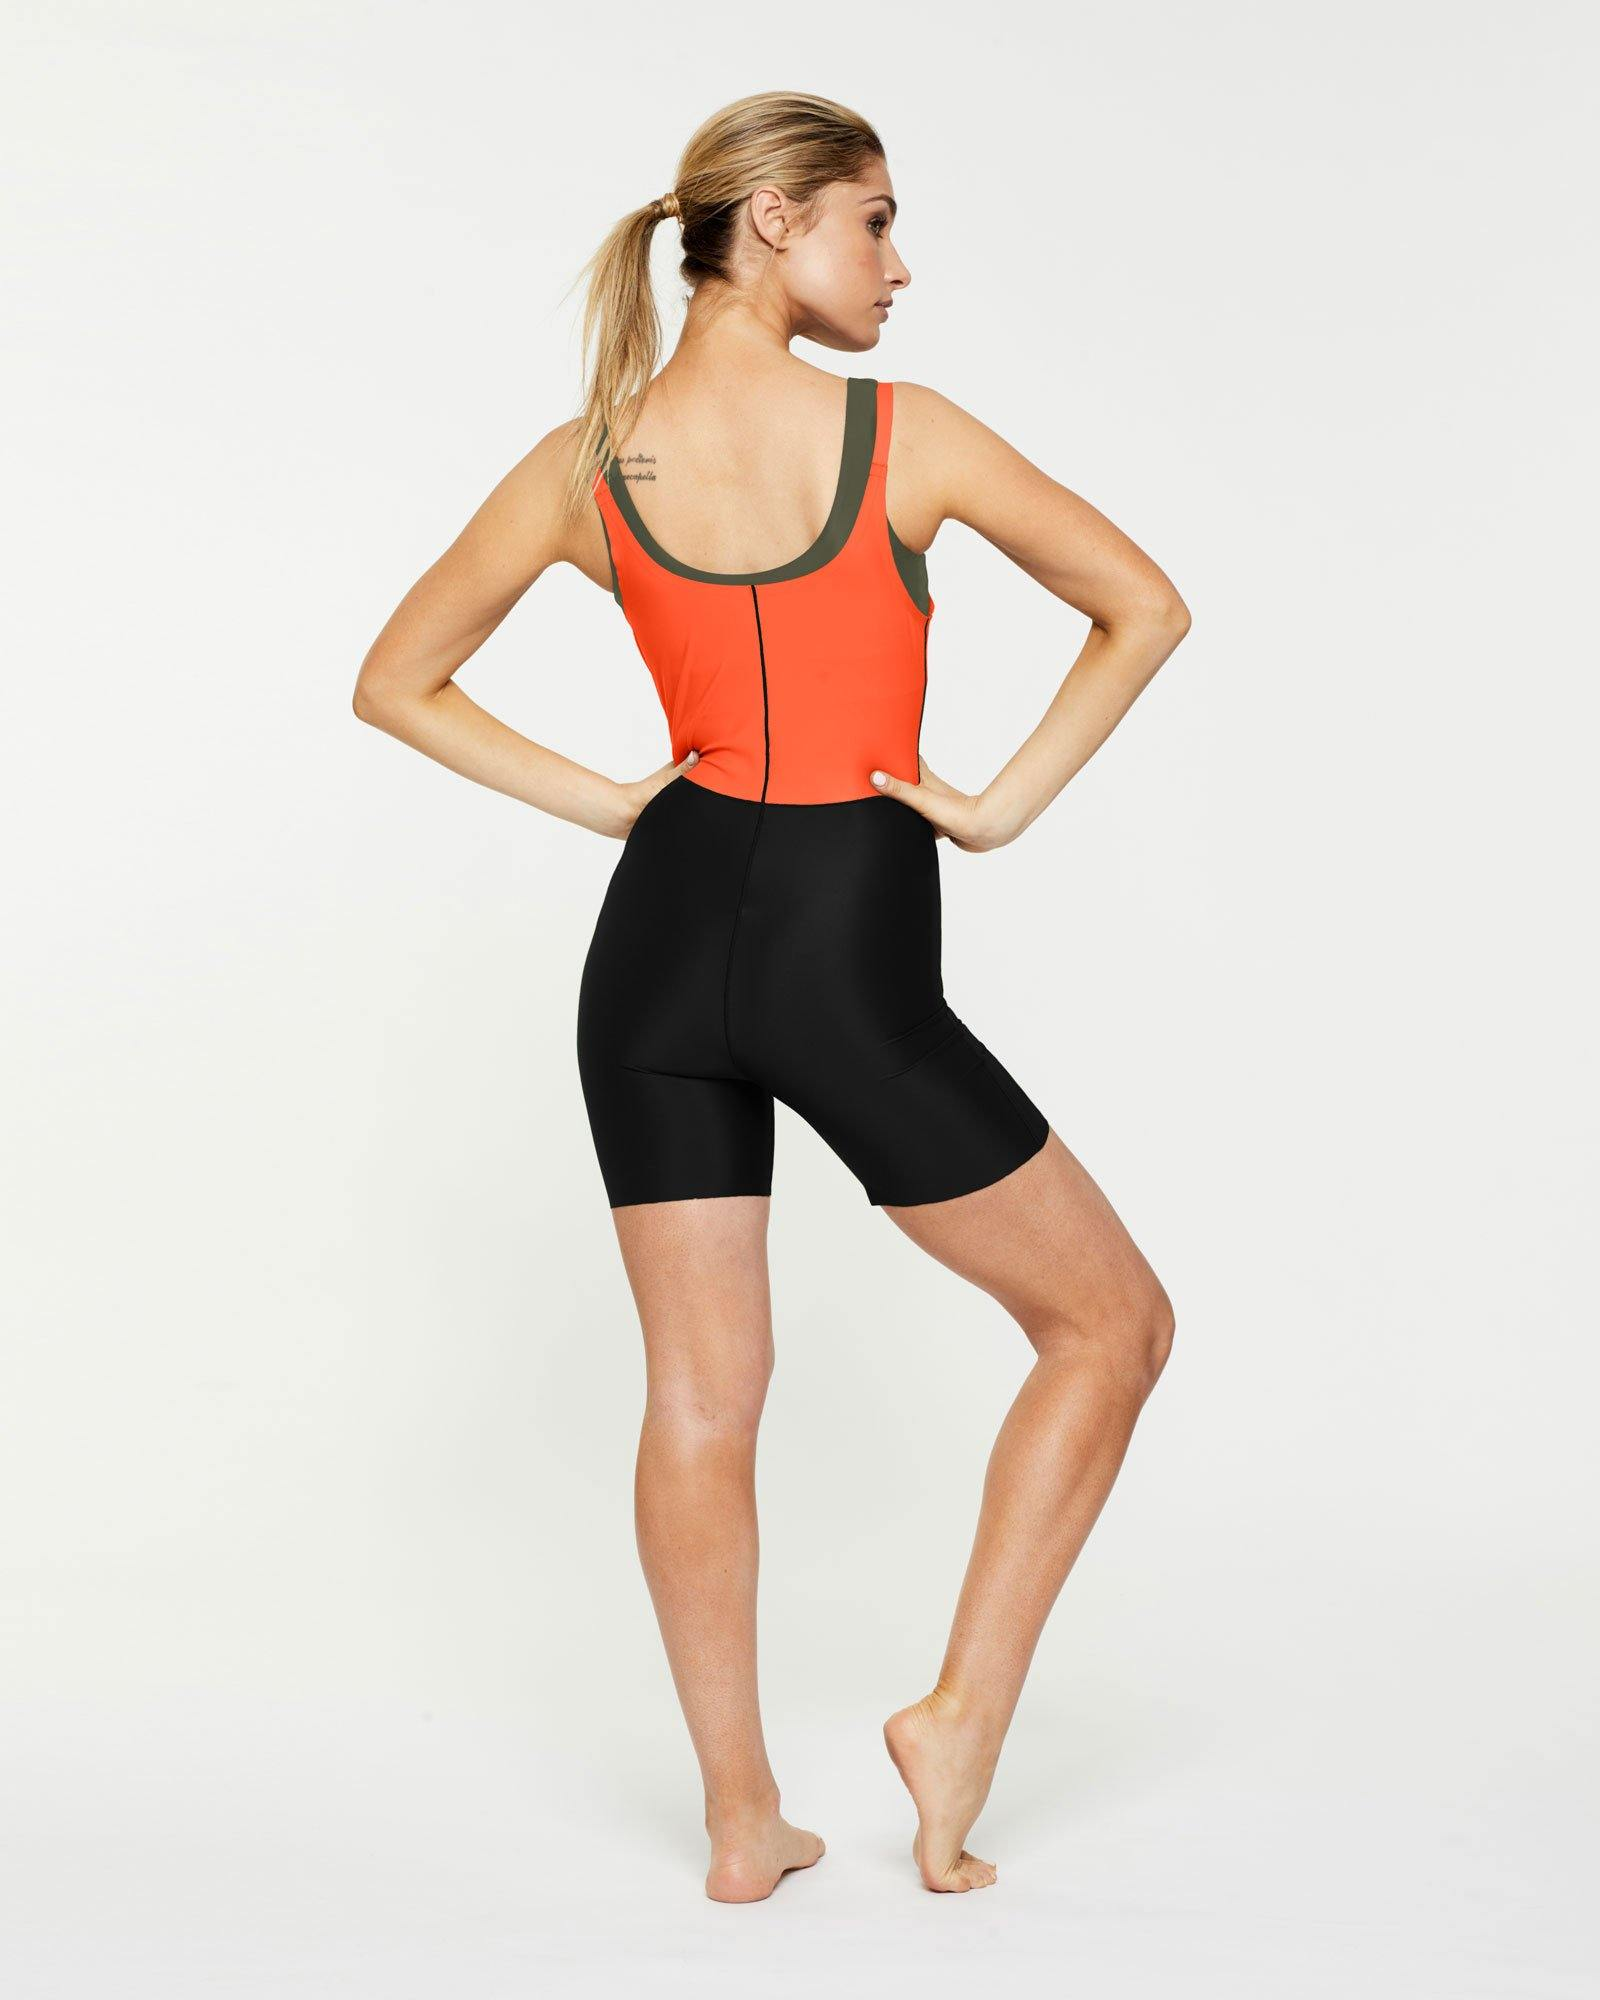 Sergeant Olive Rectus short Bodysuit worn low front over Pectoralis active top and high back, back view for pilates, barre, dance, yoga, gym workout, black and orange